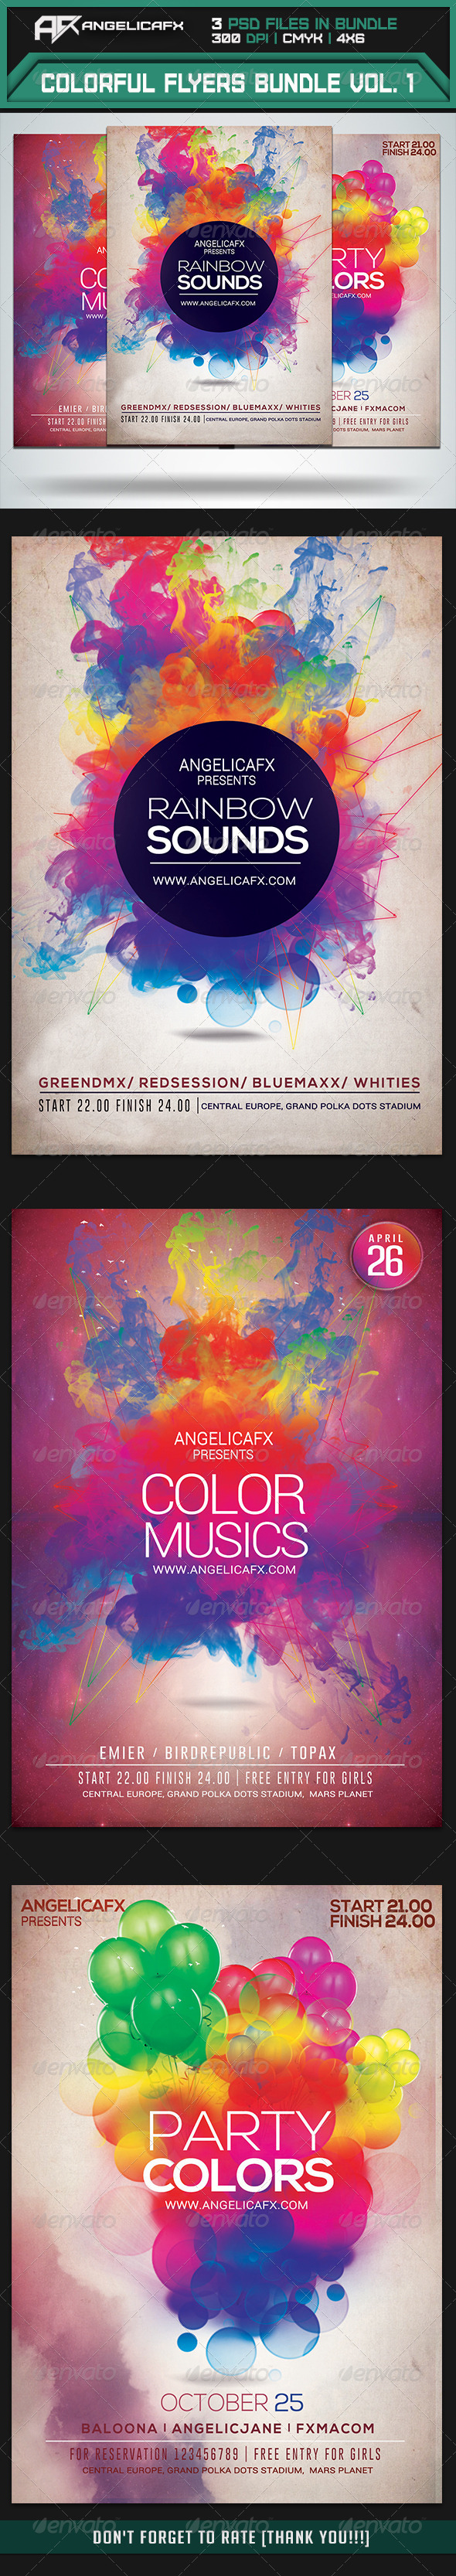 GraphicRiver Colorful Flyers Bundle Vol 1 7412321